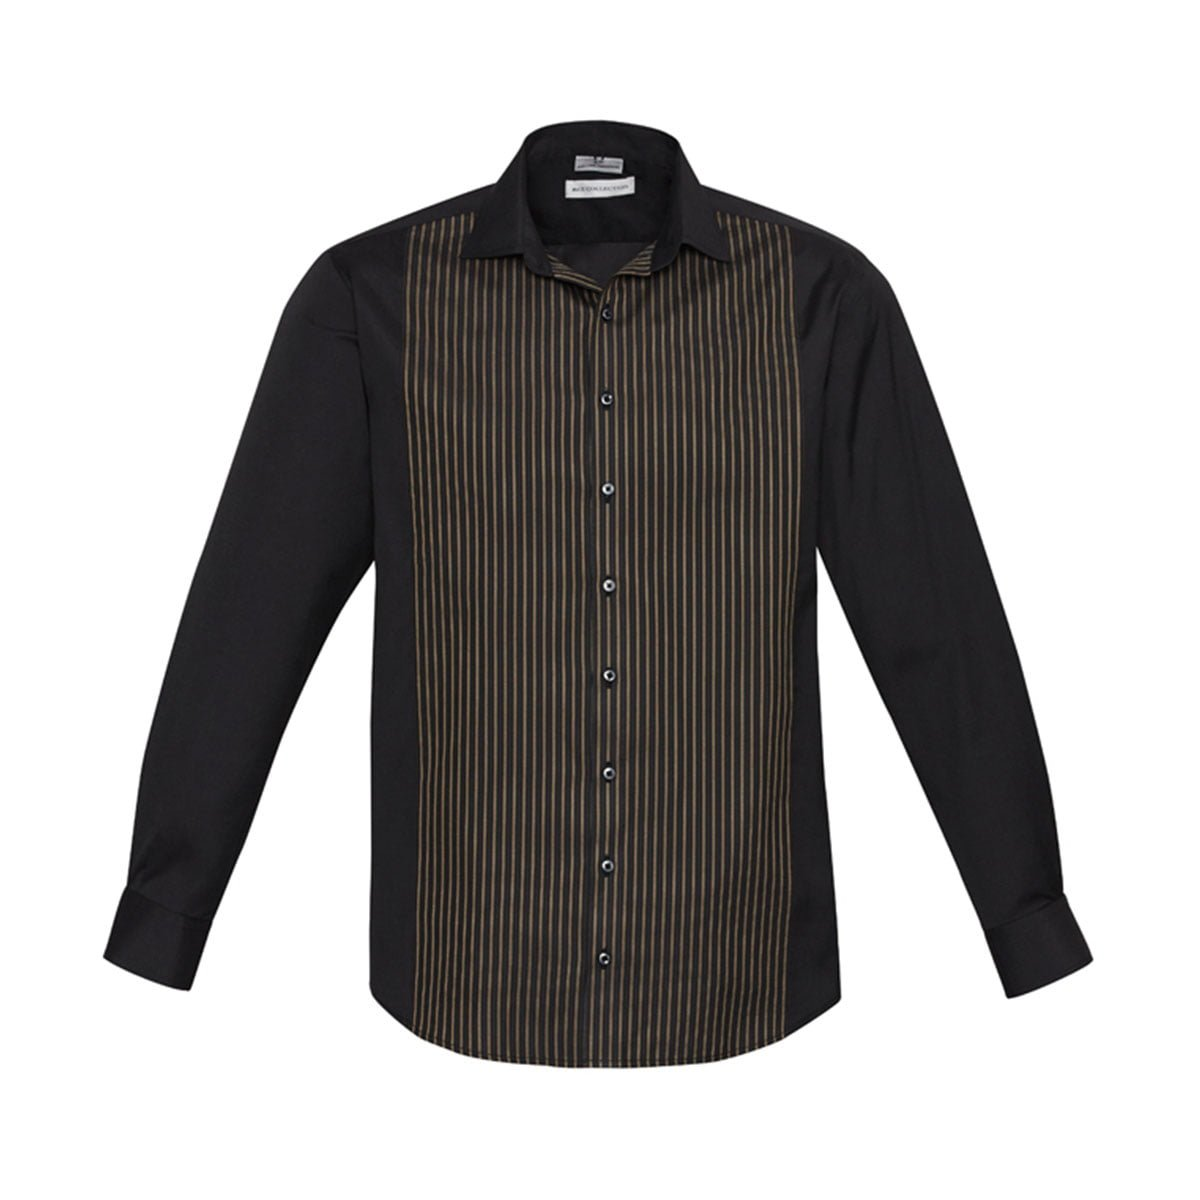 Mens Reno Panel Long Sleeve Shirt-Black / Copper Gold